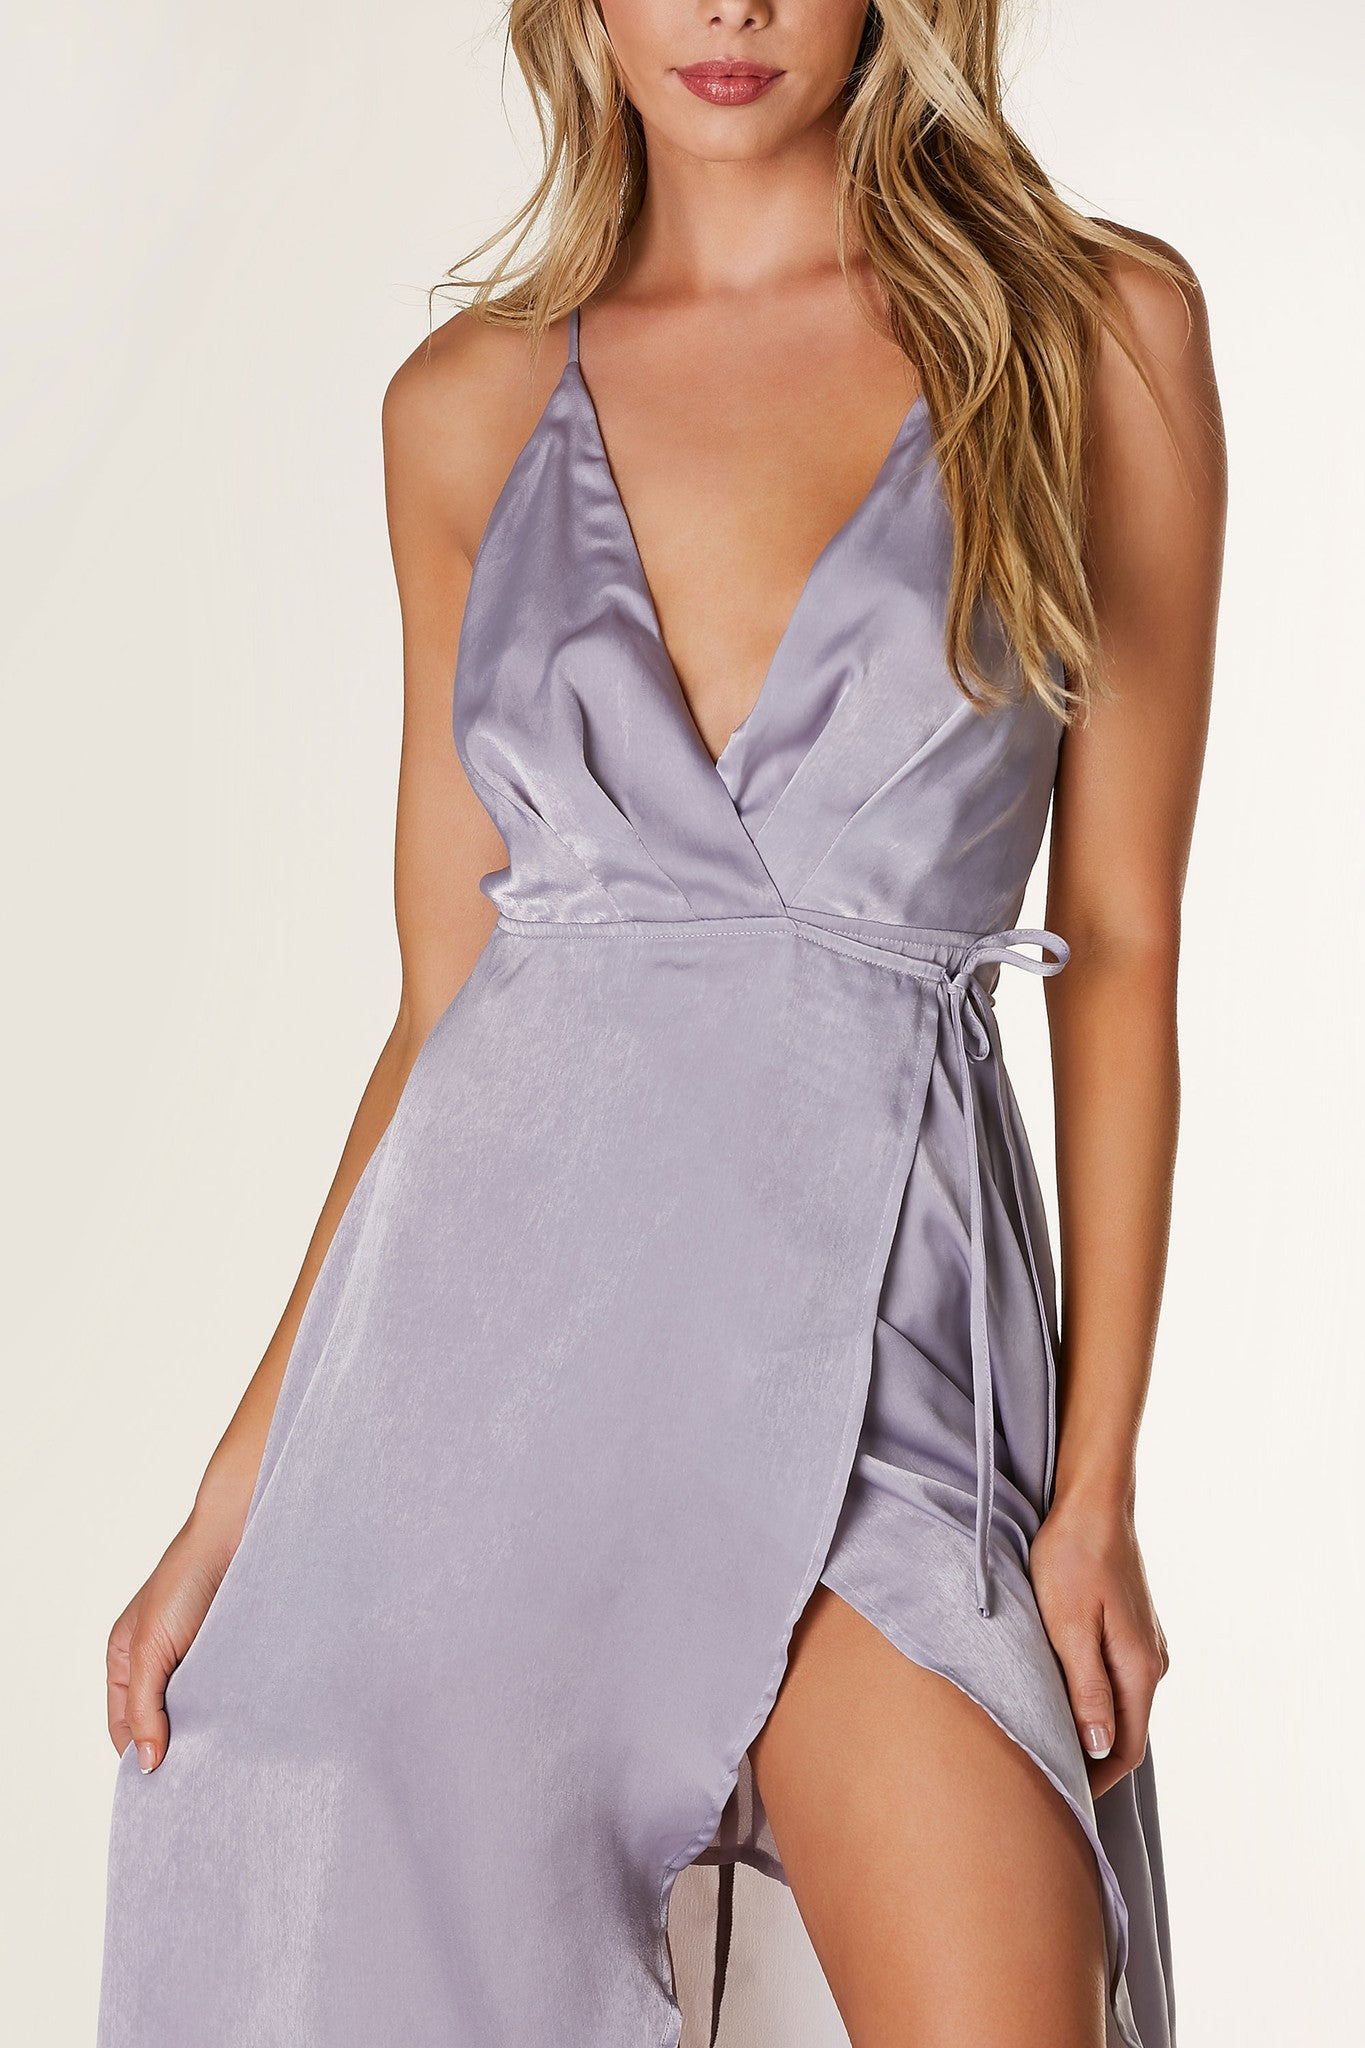 Smooth satin finish wrap dress with chic hi-low hem. Deep V-neckline with adjustable shoulder straps and waist tie closure. Open back with criss-cross strap design and lined body finish.